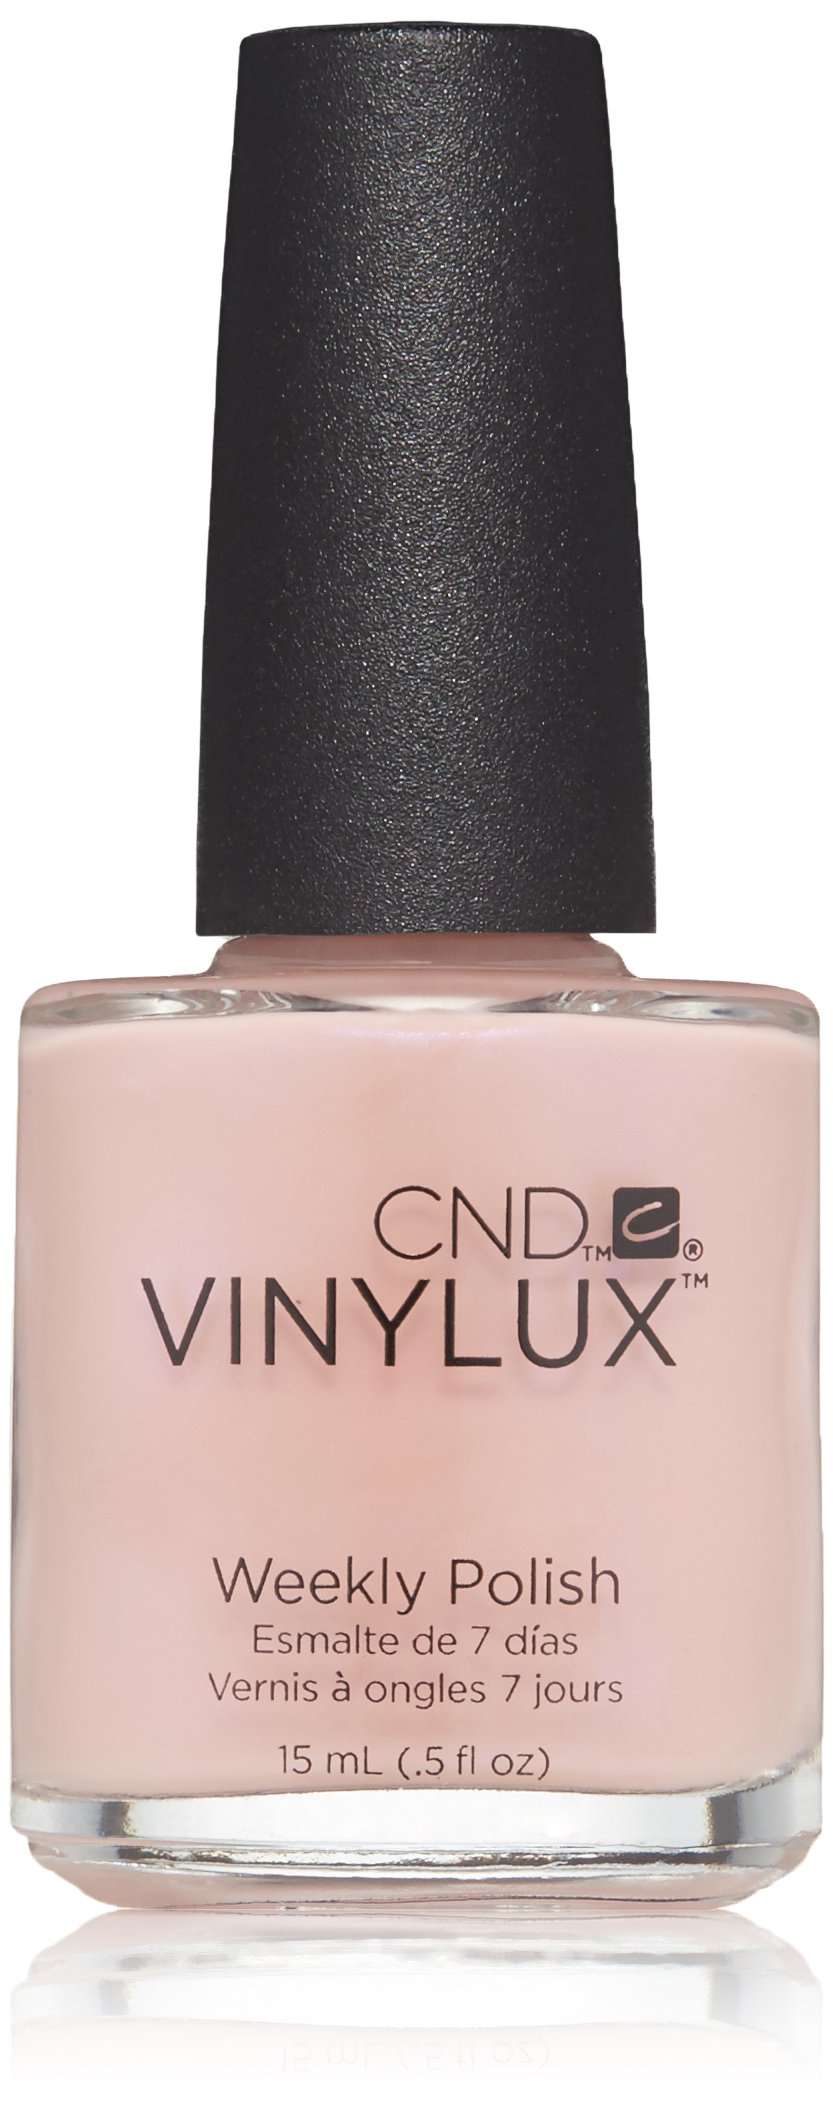 Amazon.com: CND Vinylux Weekly Polish, Be Demure, 0.5 fl